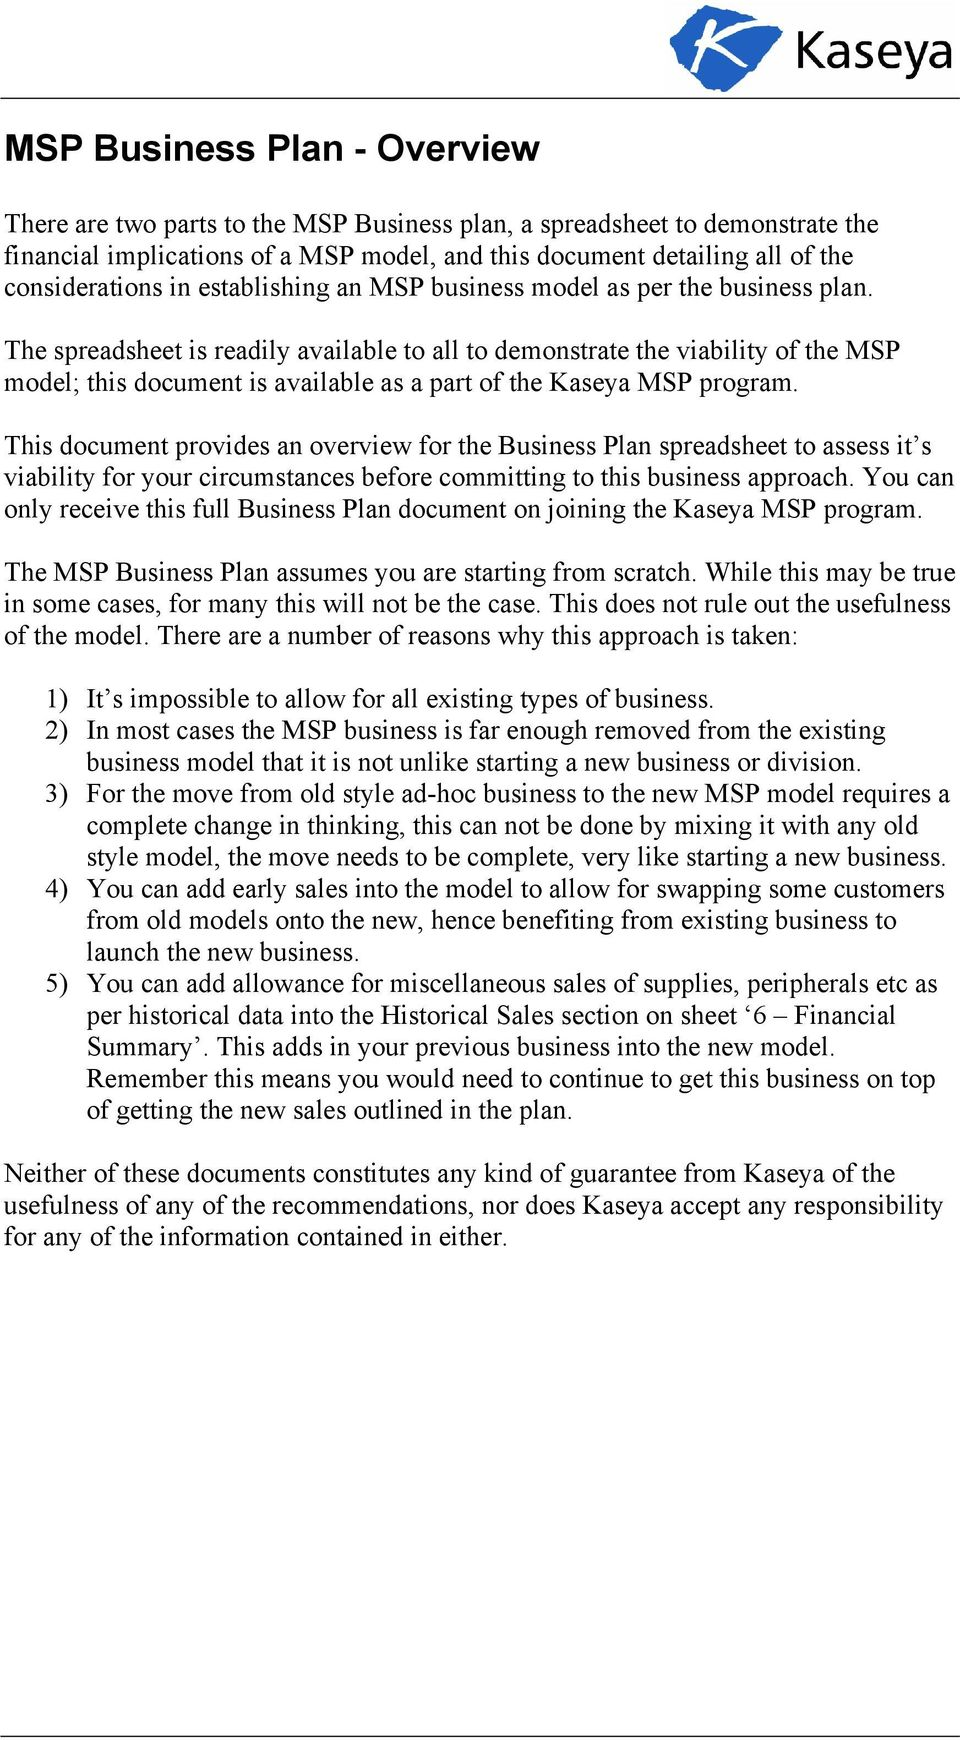 The spreadsheet is readily available to all to demonstrate the viability of the MSP model; this document is available as a part of the Kaseya MSP program.